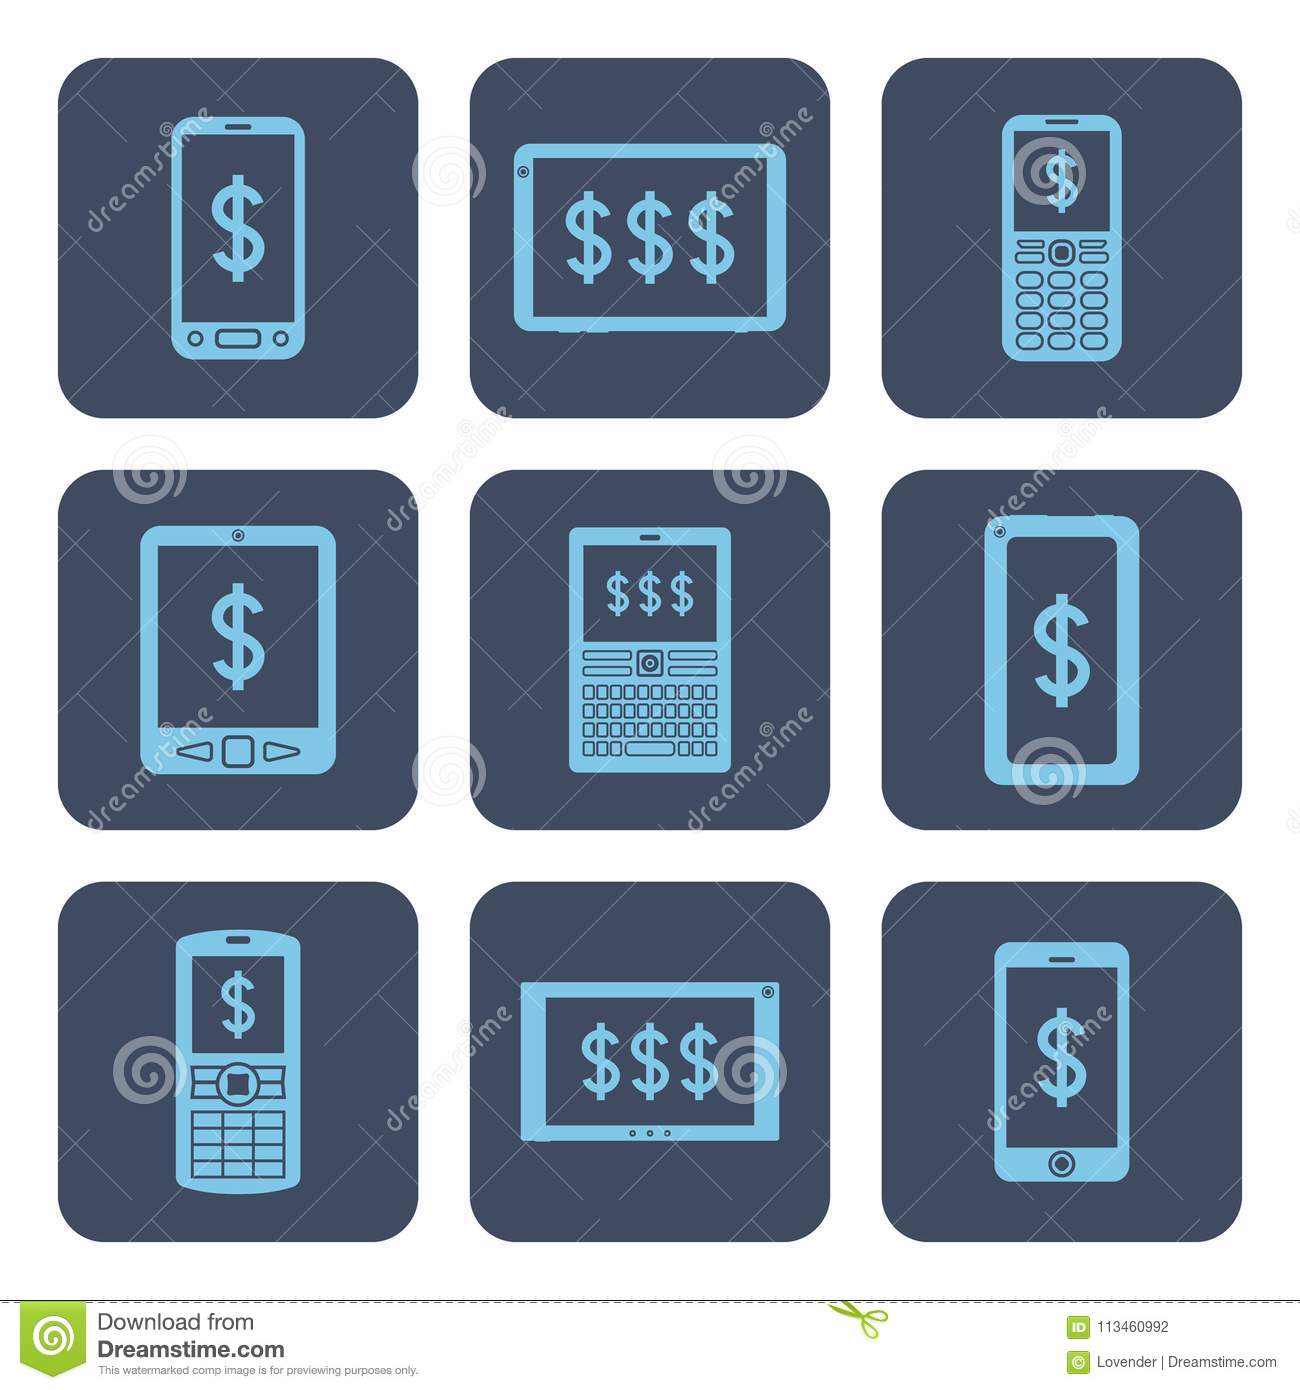 Set Of Icons Mobile Devices With Dollar Symbols On Screens Stock